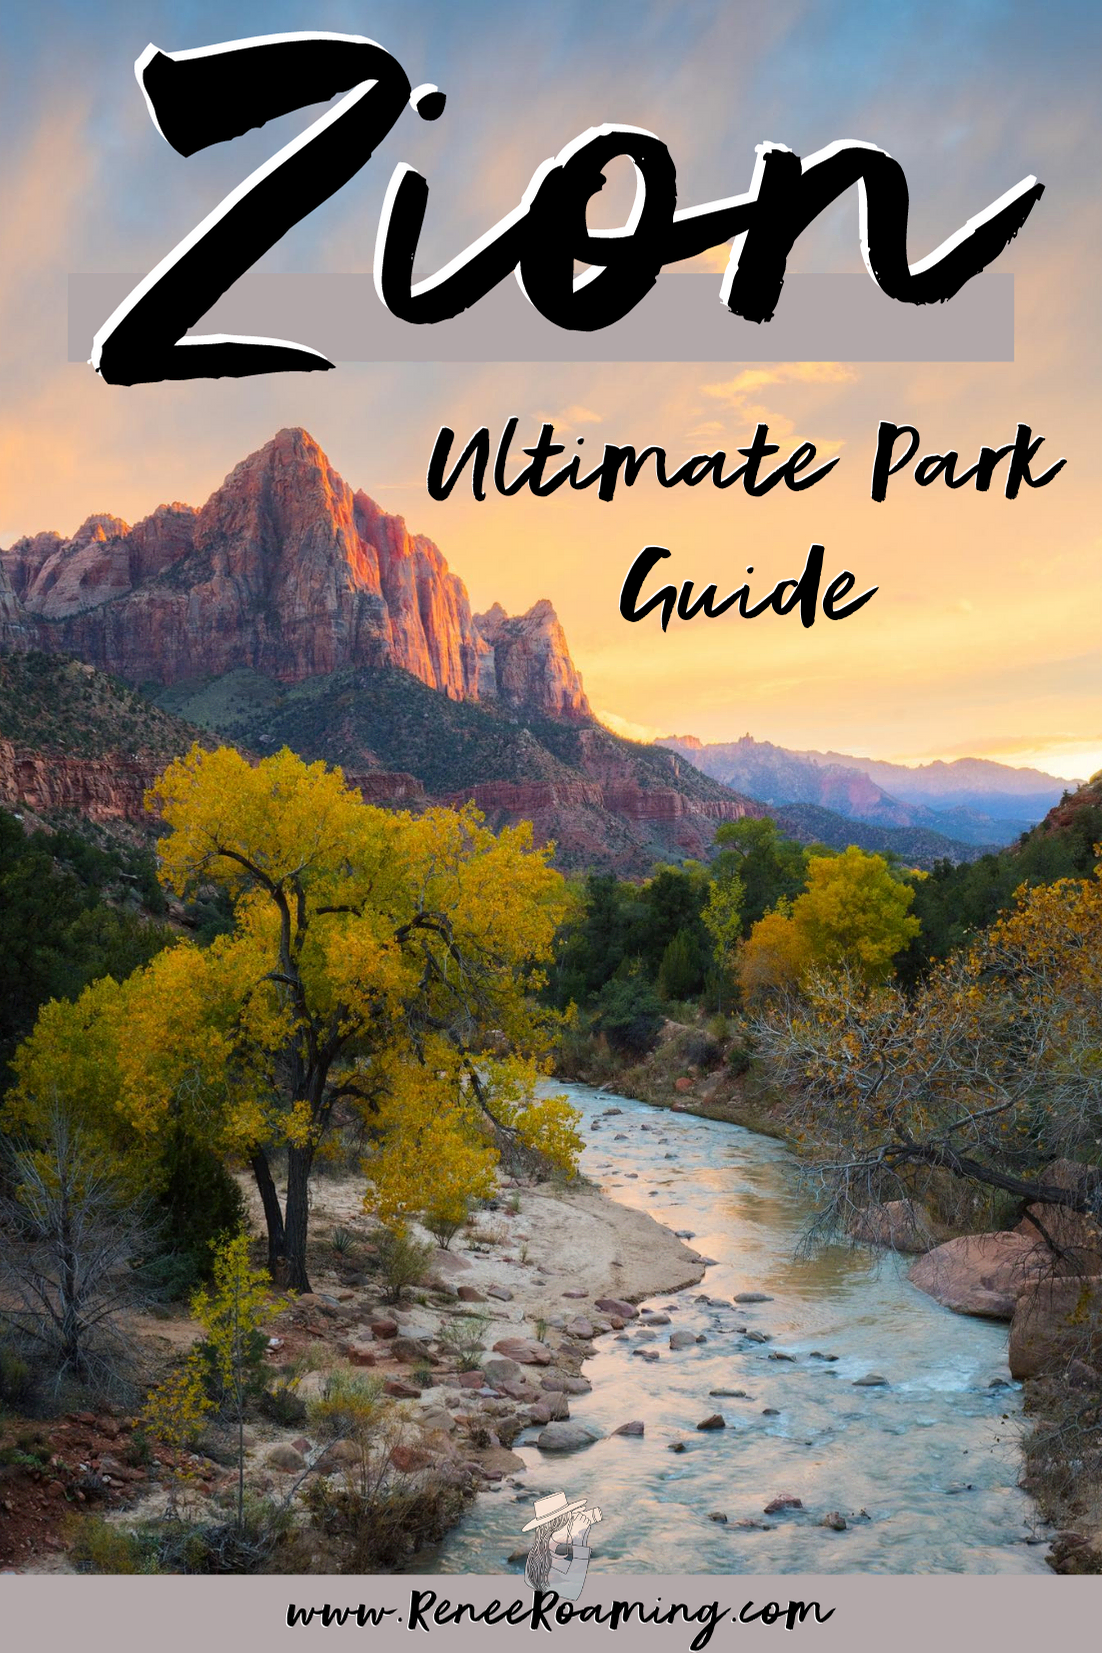 The Ultimate Guide to Exploring Zion National Park